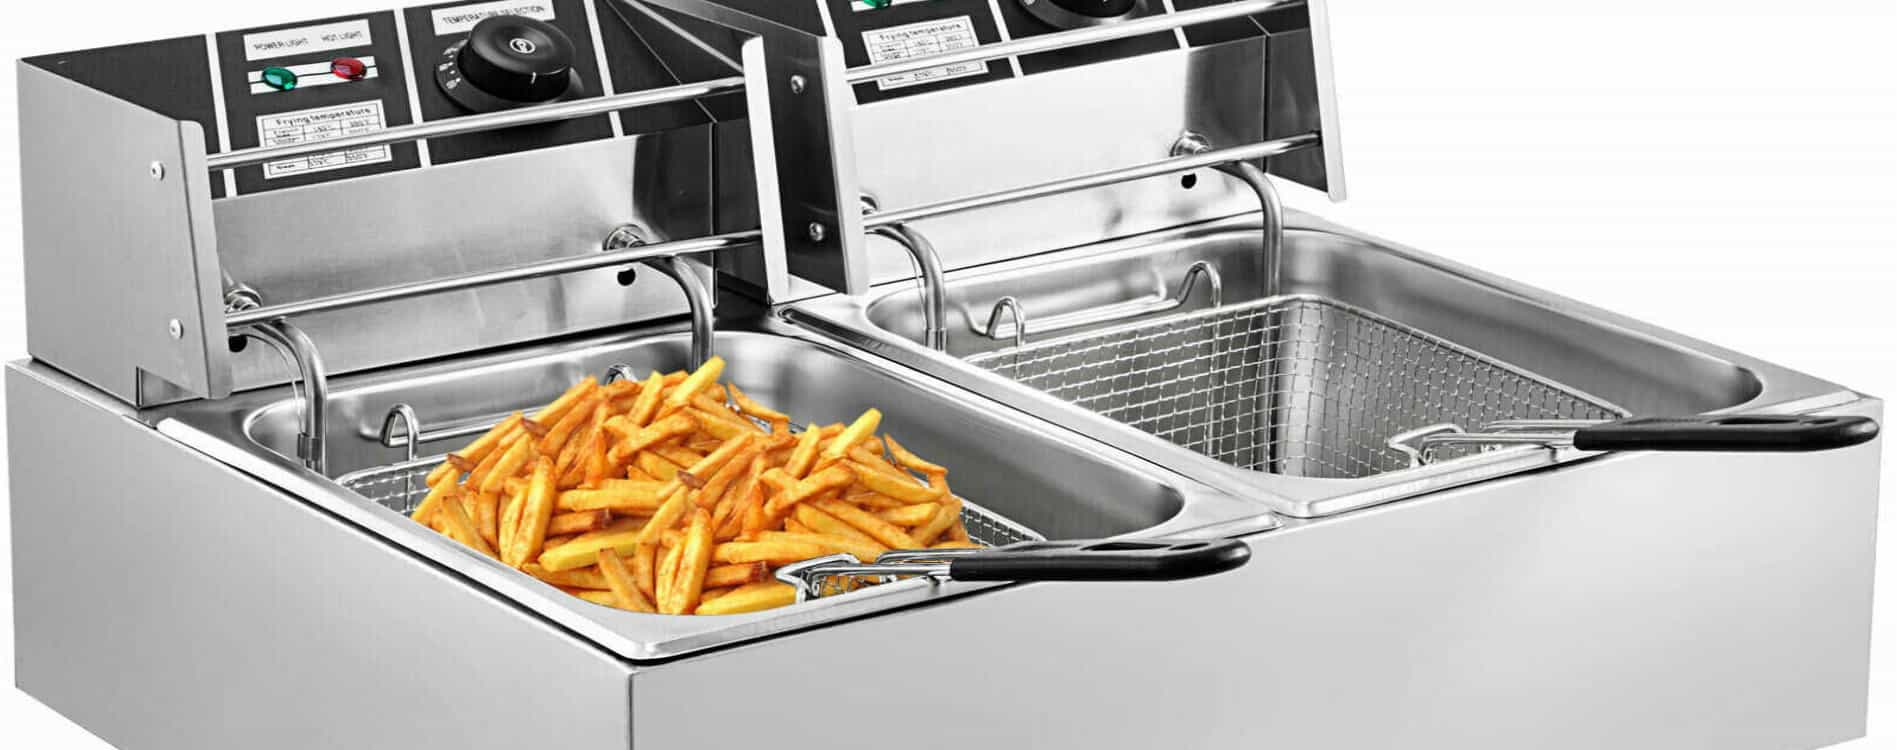 Commercial Deep Fryers 2020 | Check Out Our Reviews